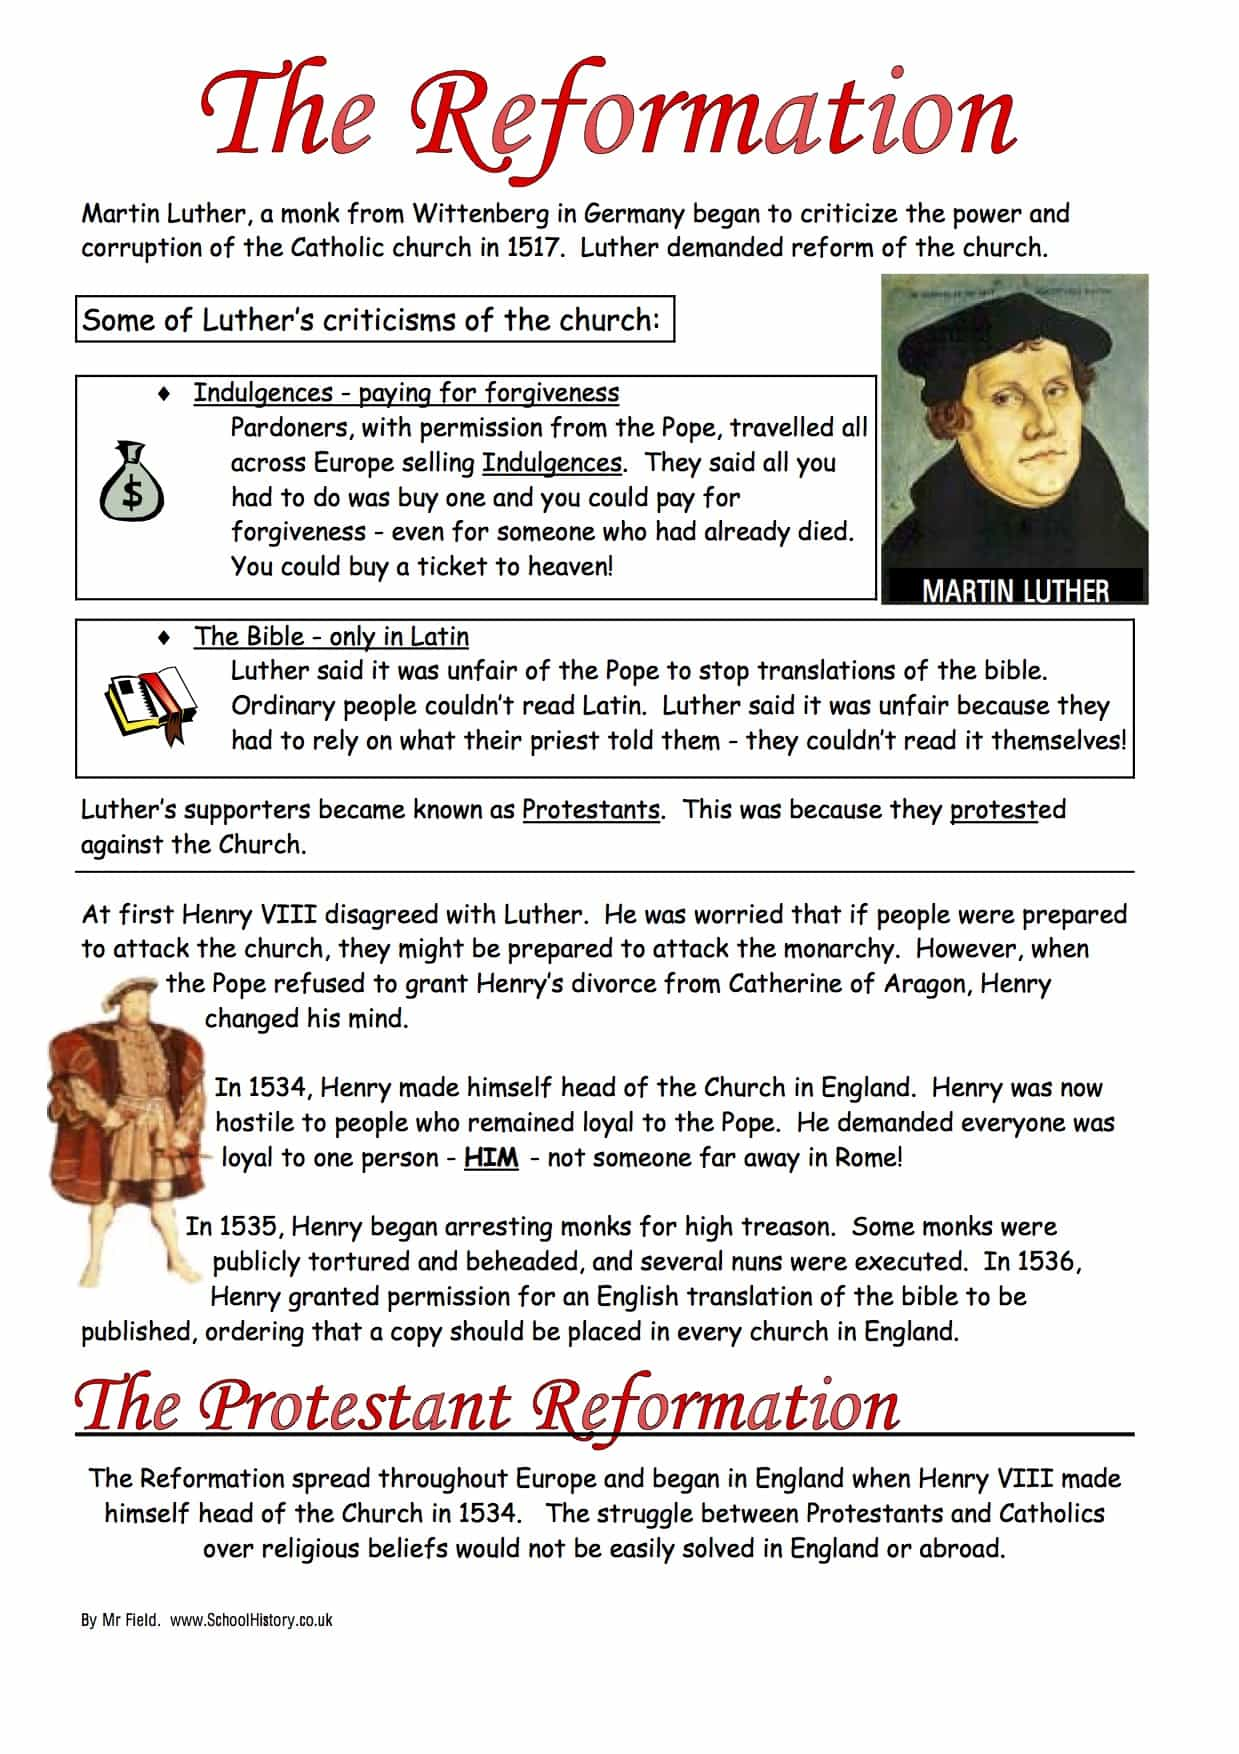 The Protestant Reformation Worksheet